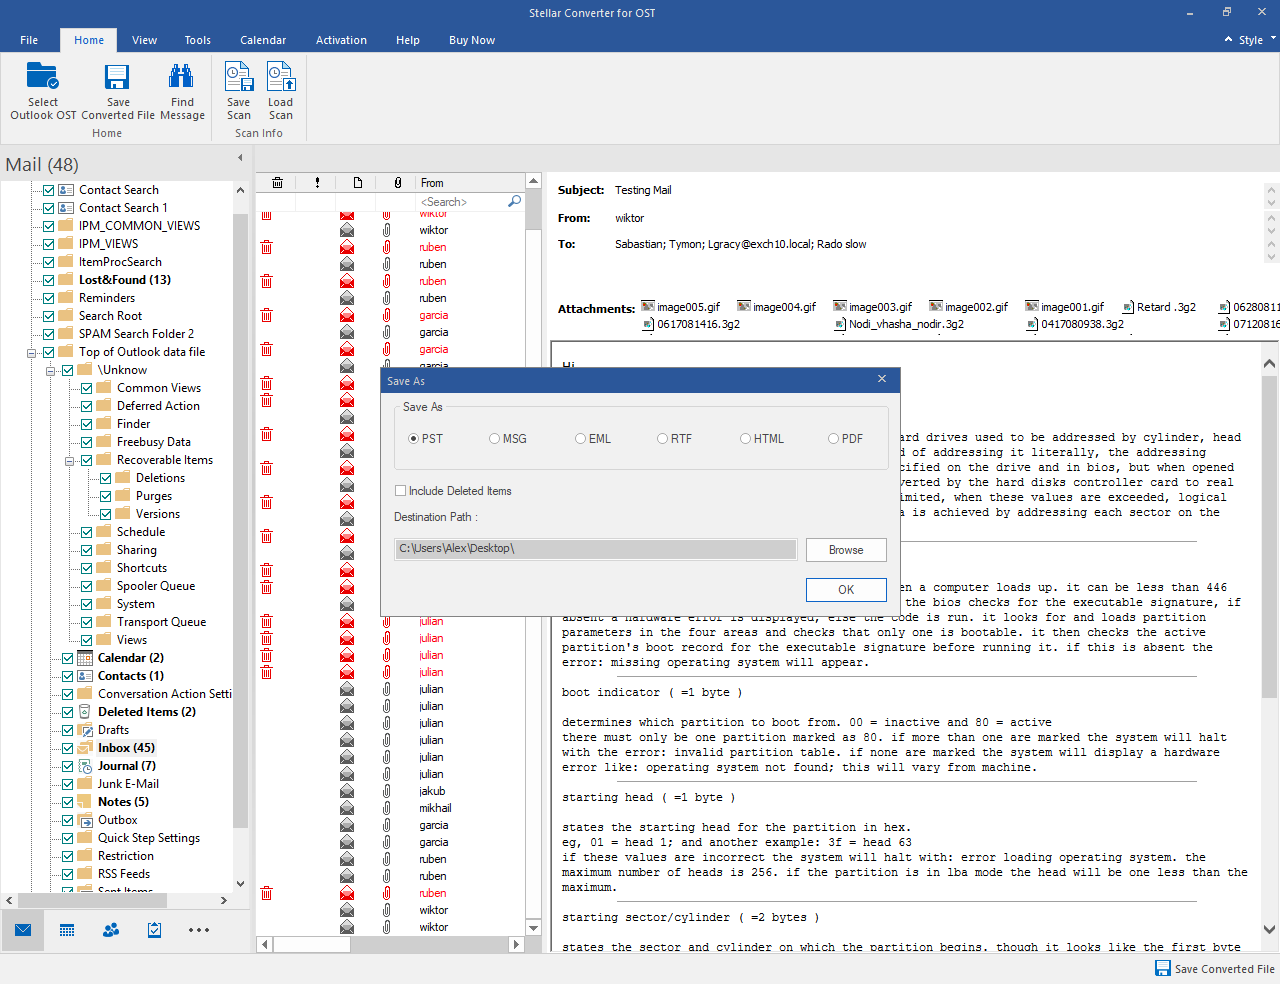 free ost to pst converter in outlook 2016